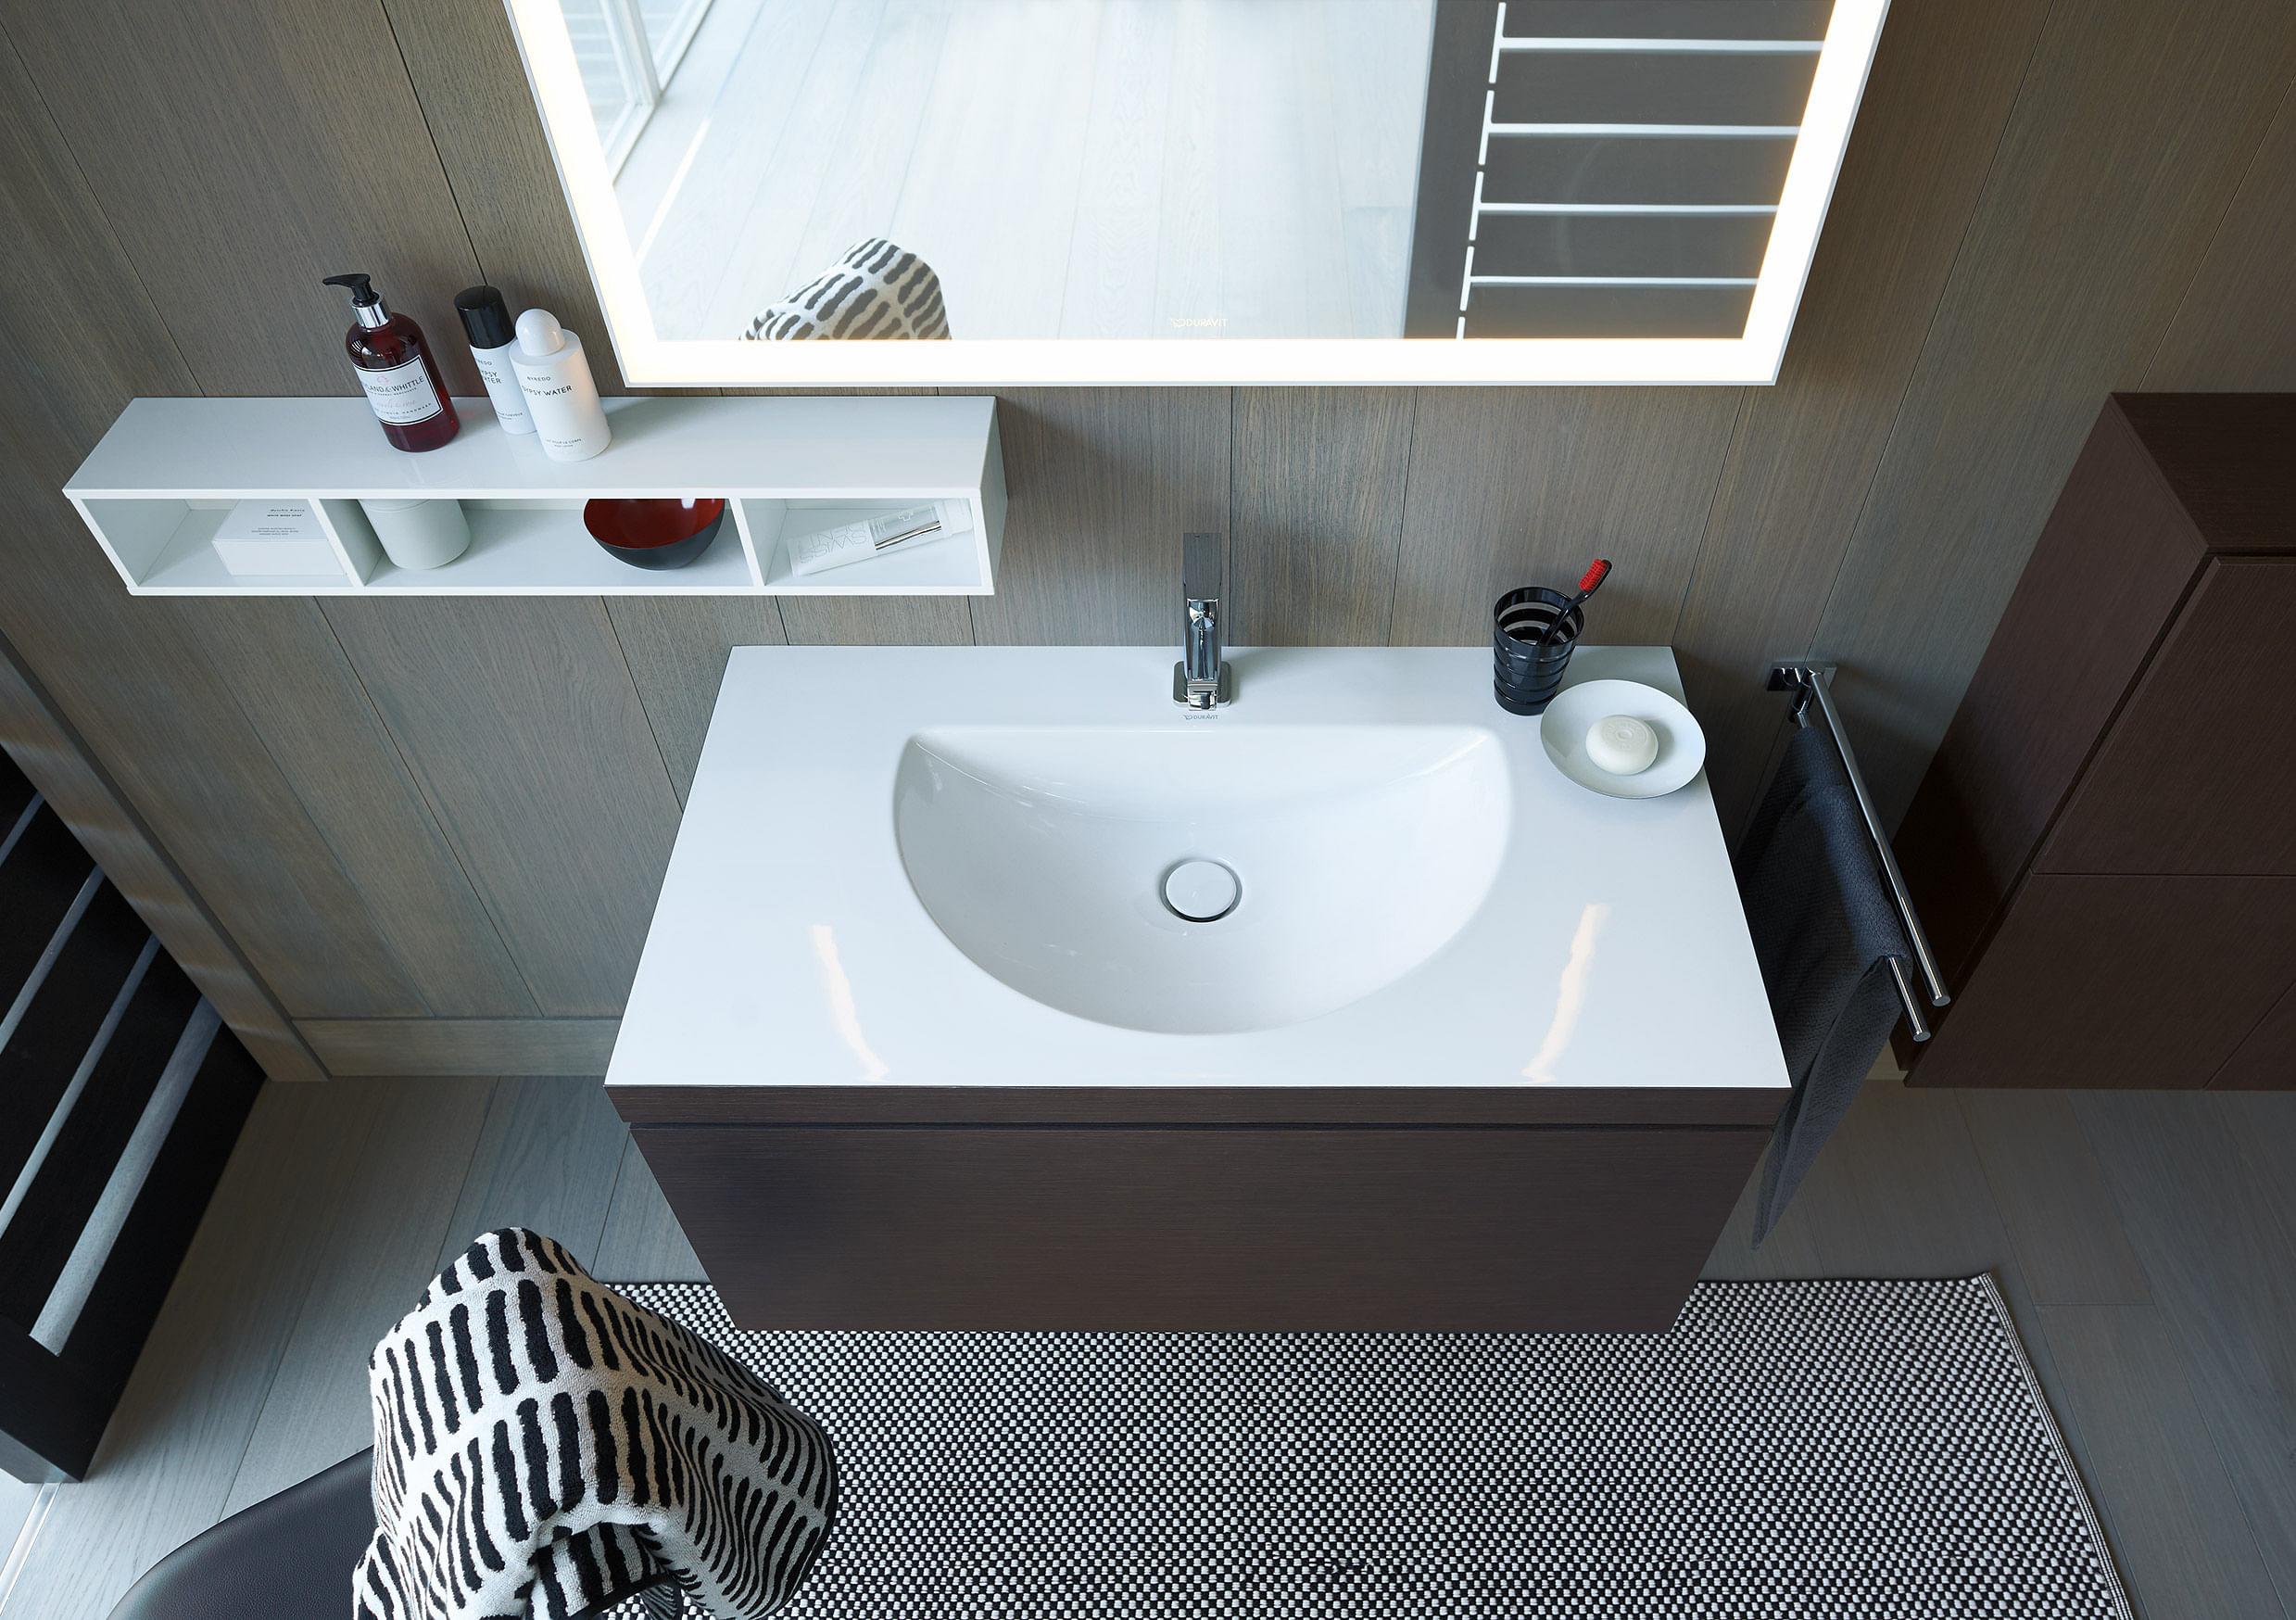 Bathroom design: Easy-to-clean basin with streamlined ...